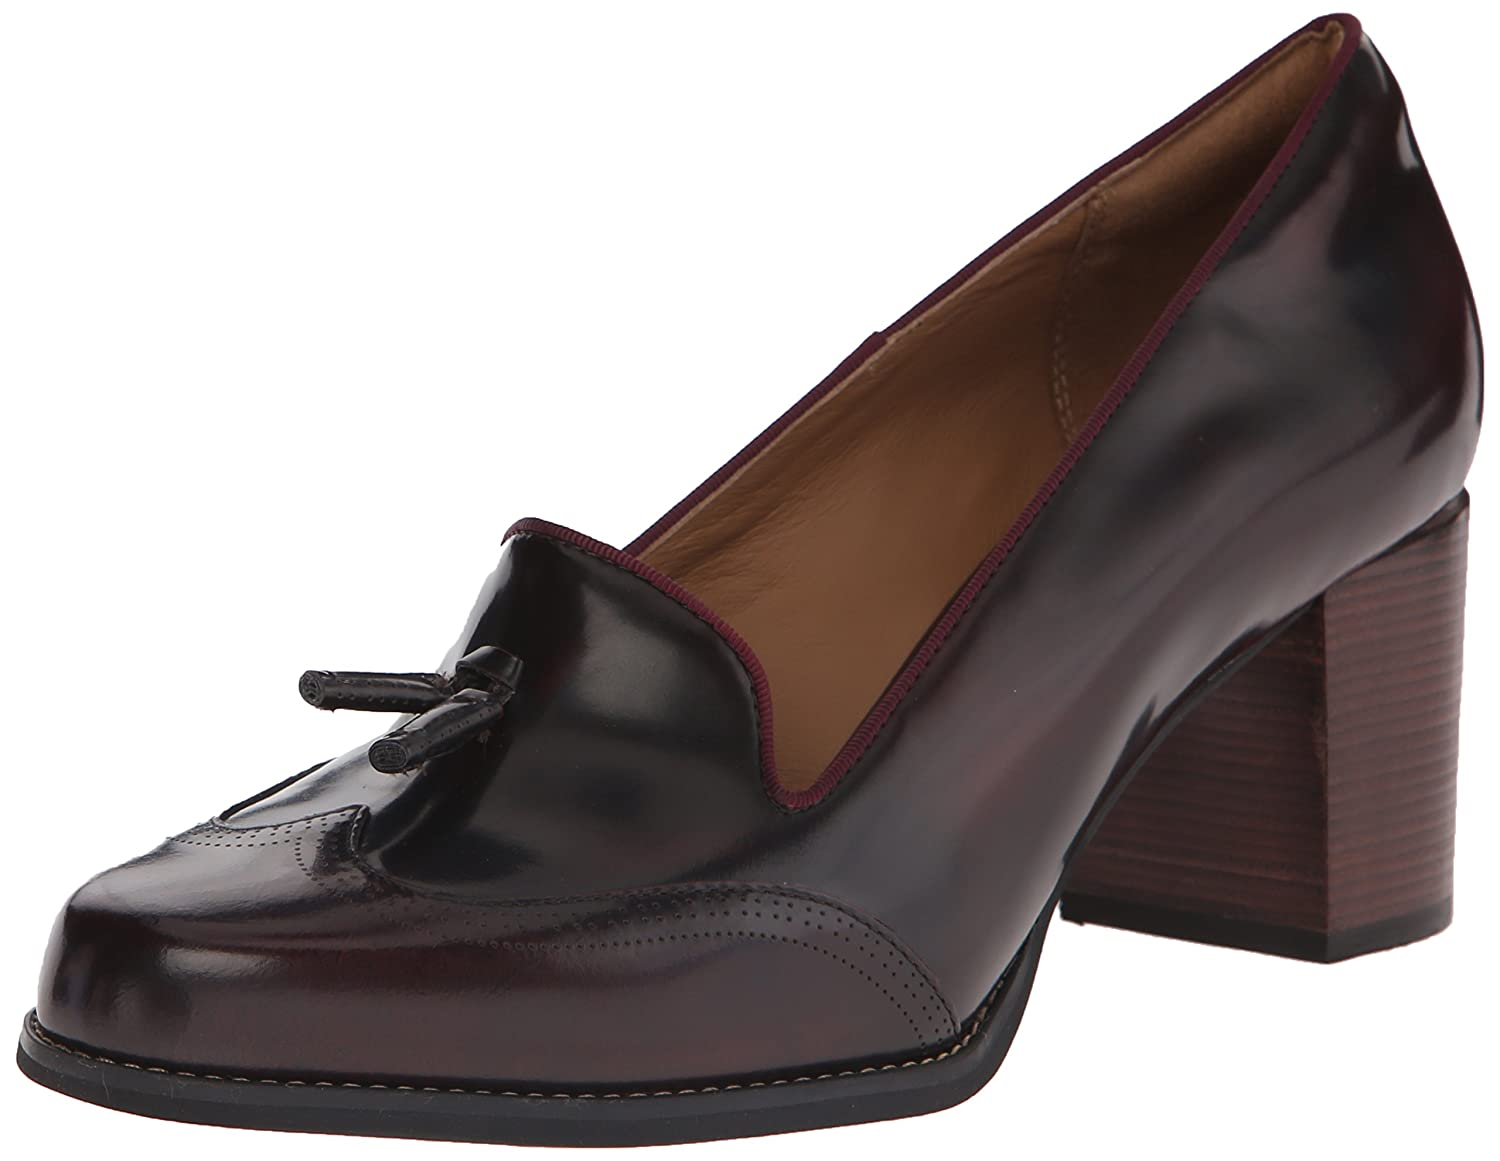 Amazon.com | CLARKS Women's Tarah Rosie Dress Pump, Burgundy Leather, 9.5 M  US | Pumps